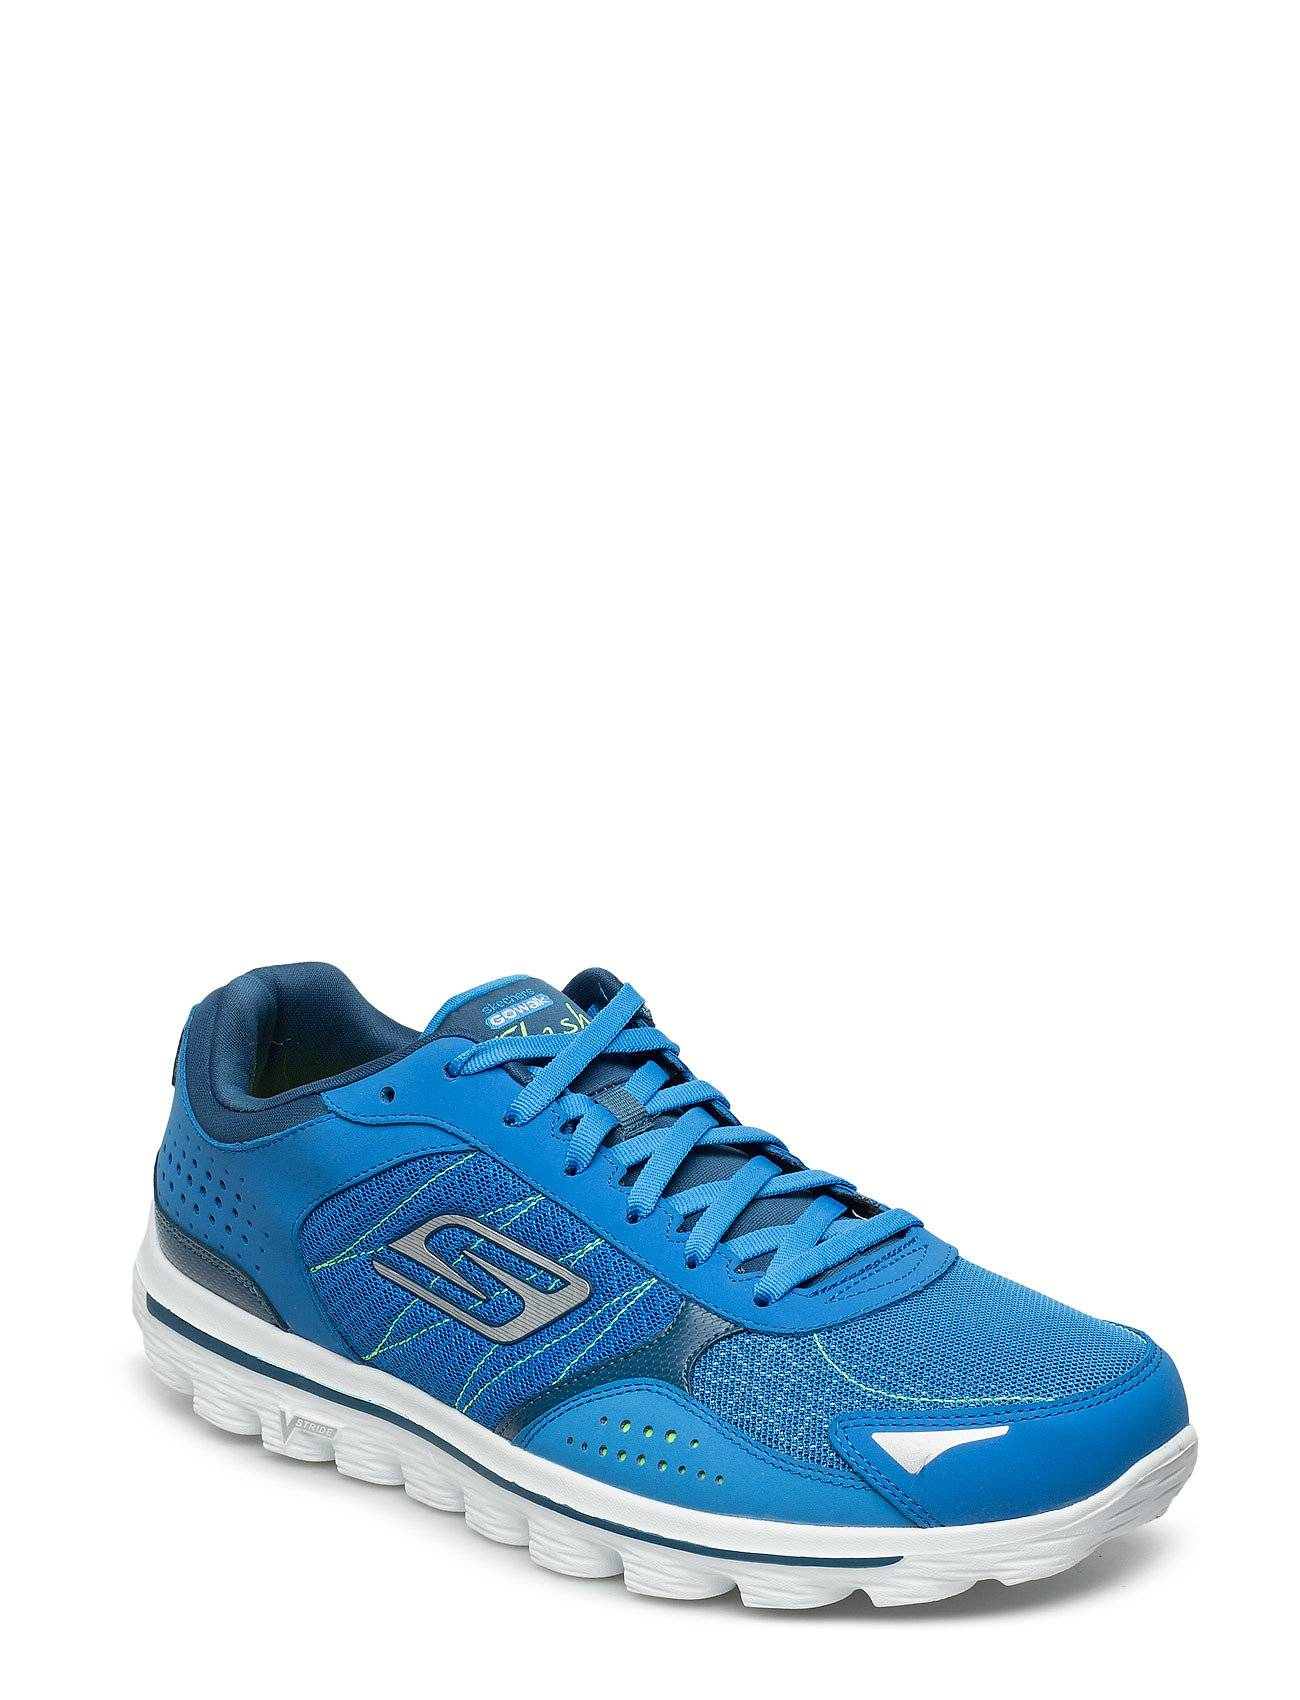 Skechers Mens Gowalk 2 - Flash